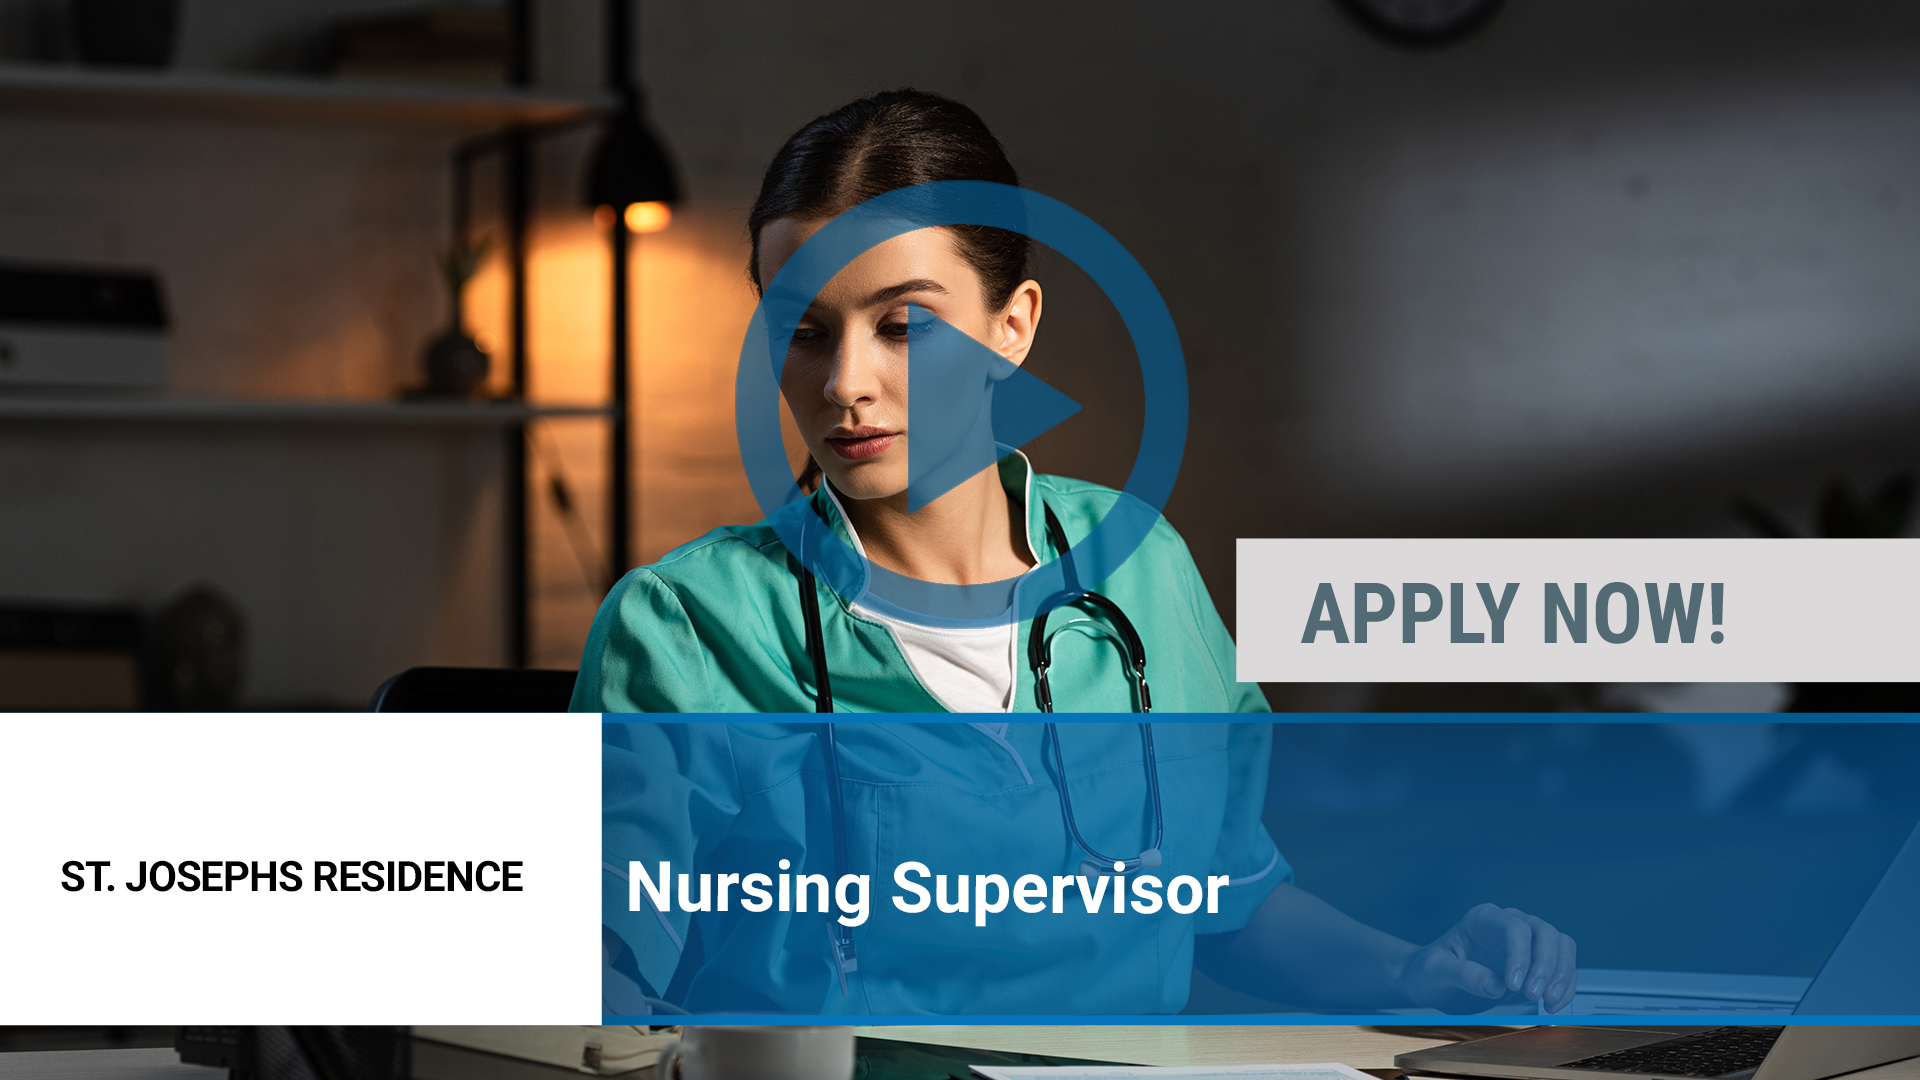 Watch our careers video for available job opening Nursing Supervisor in New Rochelle, NY